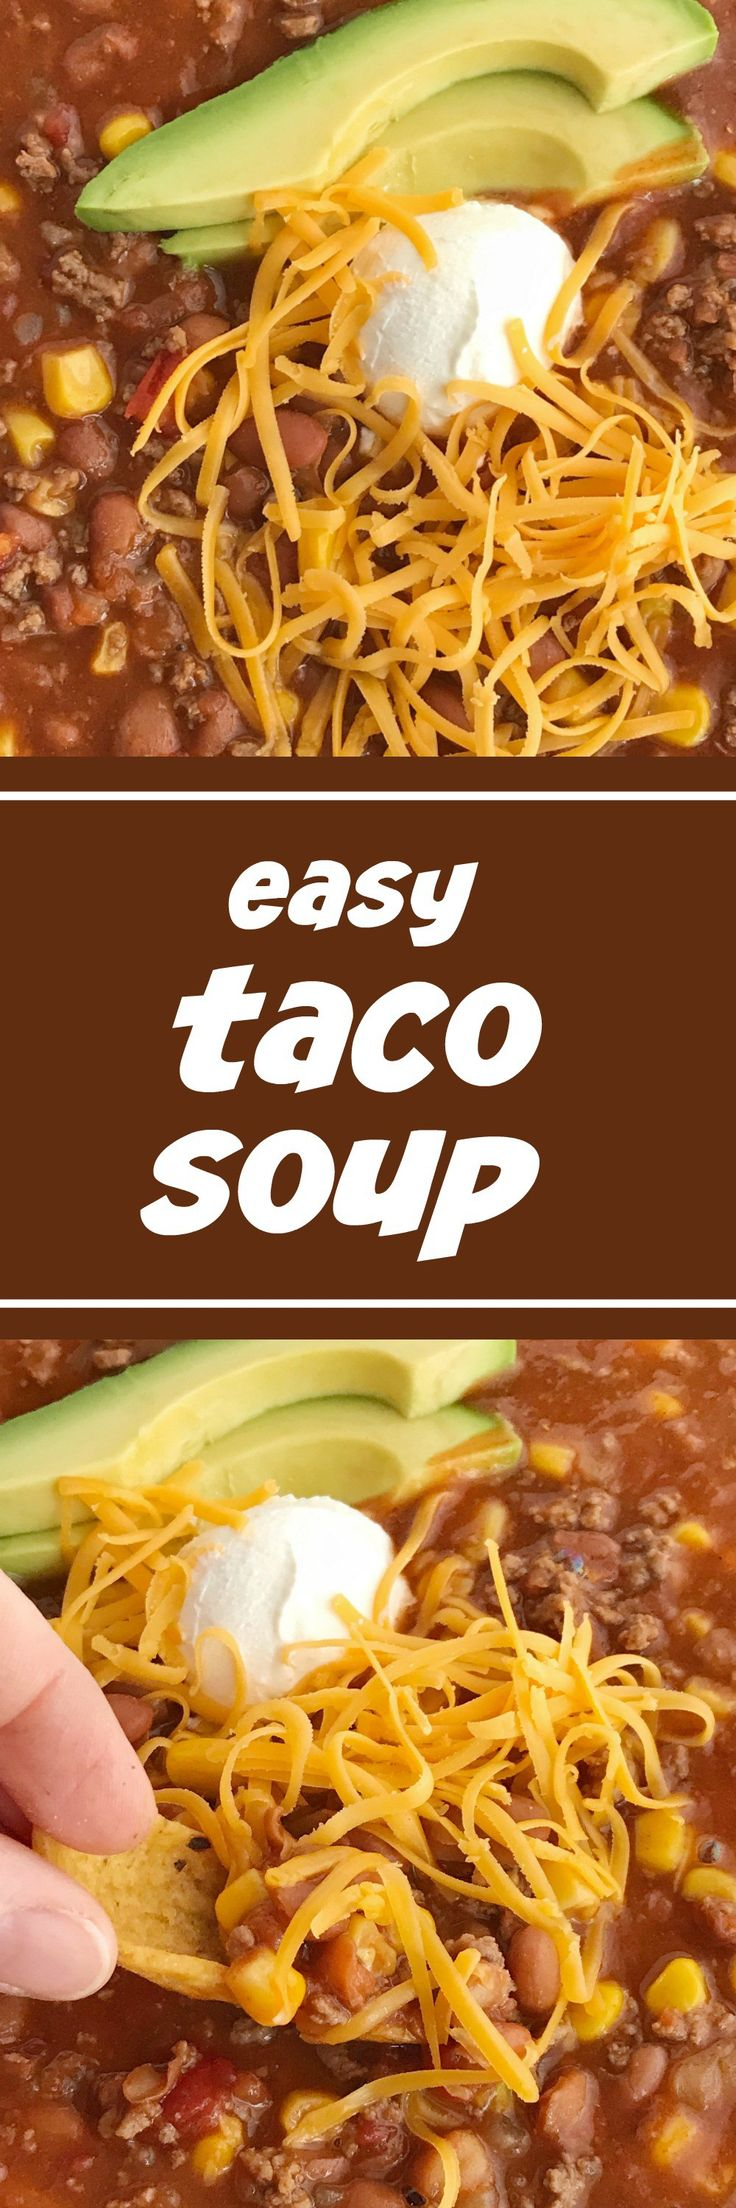 Easy Taco Soup | Easy taco soup is loaded with ground beef, chili beans, corn, and tomatoes. Pile it high with corn chips, sour cream, and shredded cheese. Taco soup is a simple recipe that is so comforting during the cold winter months. One pot and about 30 minutes is all you need for an easy dinner!